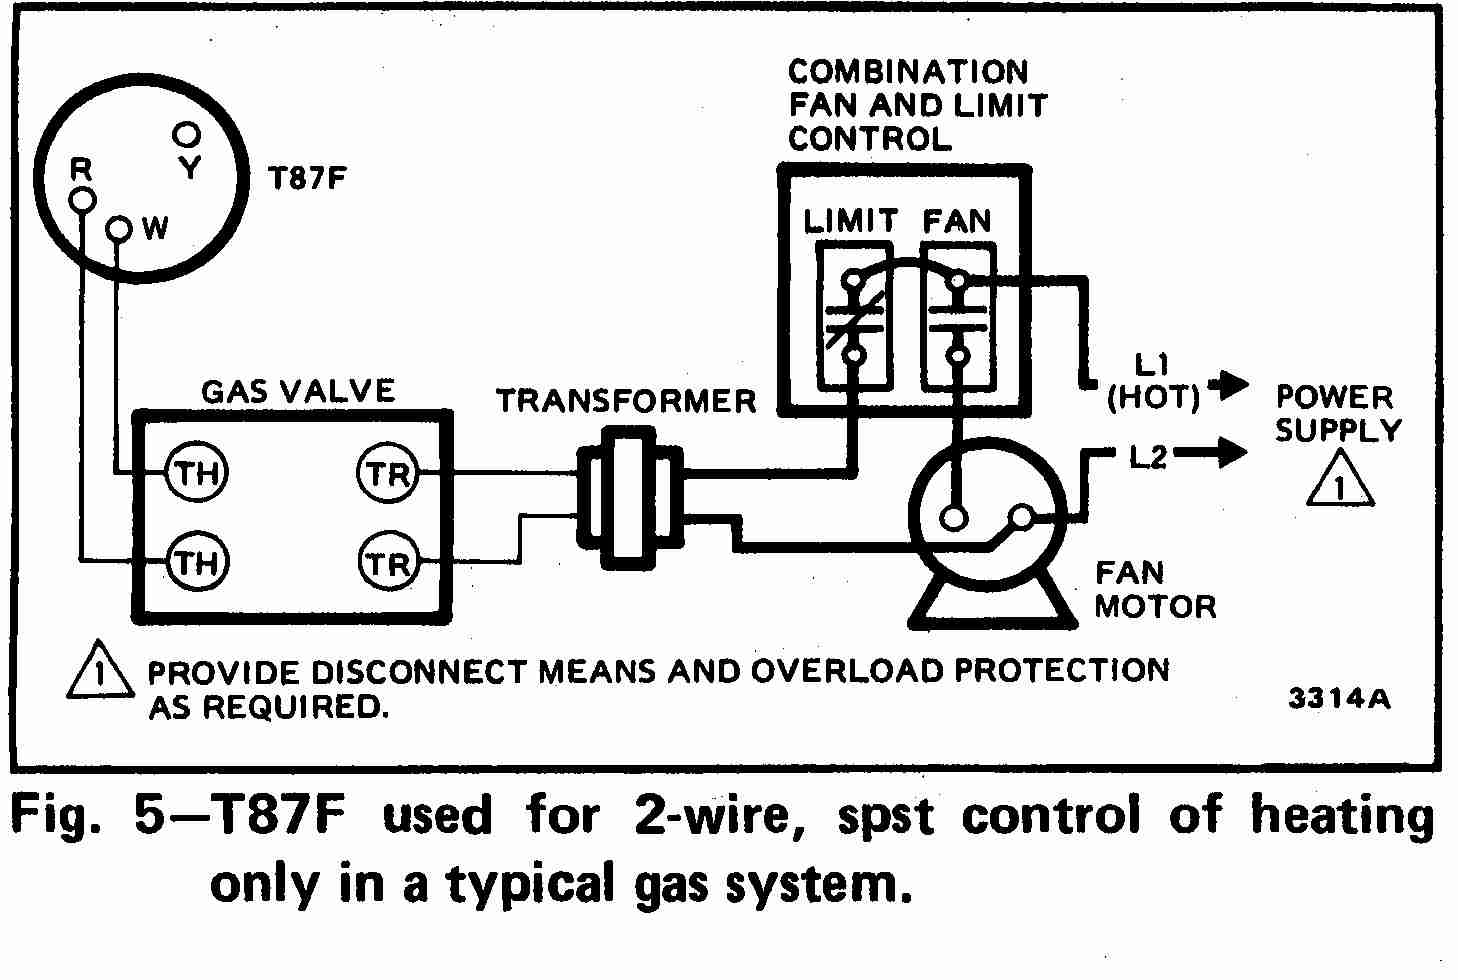 Amana Thermostat Control Wiring as well 1059221 Trane Furnace Help as well Bard Air Conditioner Wiring Diagram furthermore Heat Pump Air Handler Wiring Diagram in addition Images Of Janitrol Thermostat Wiring Diagram Diagrams. on wiring diagram for york thermostats